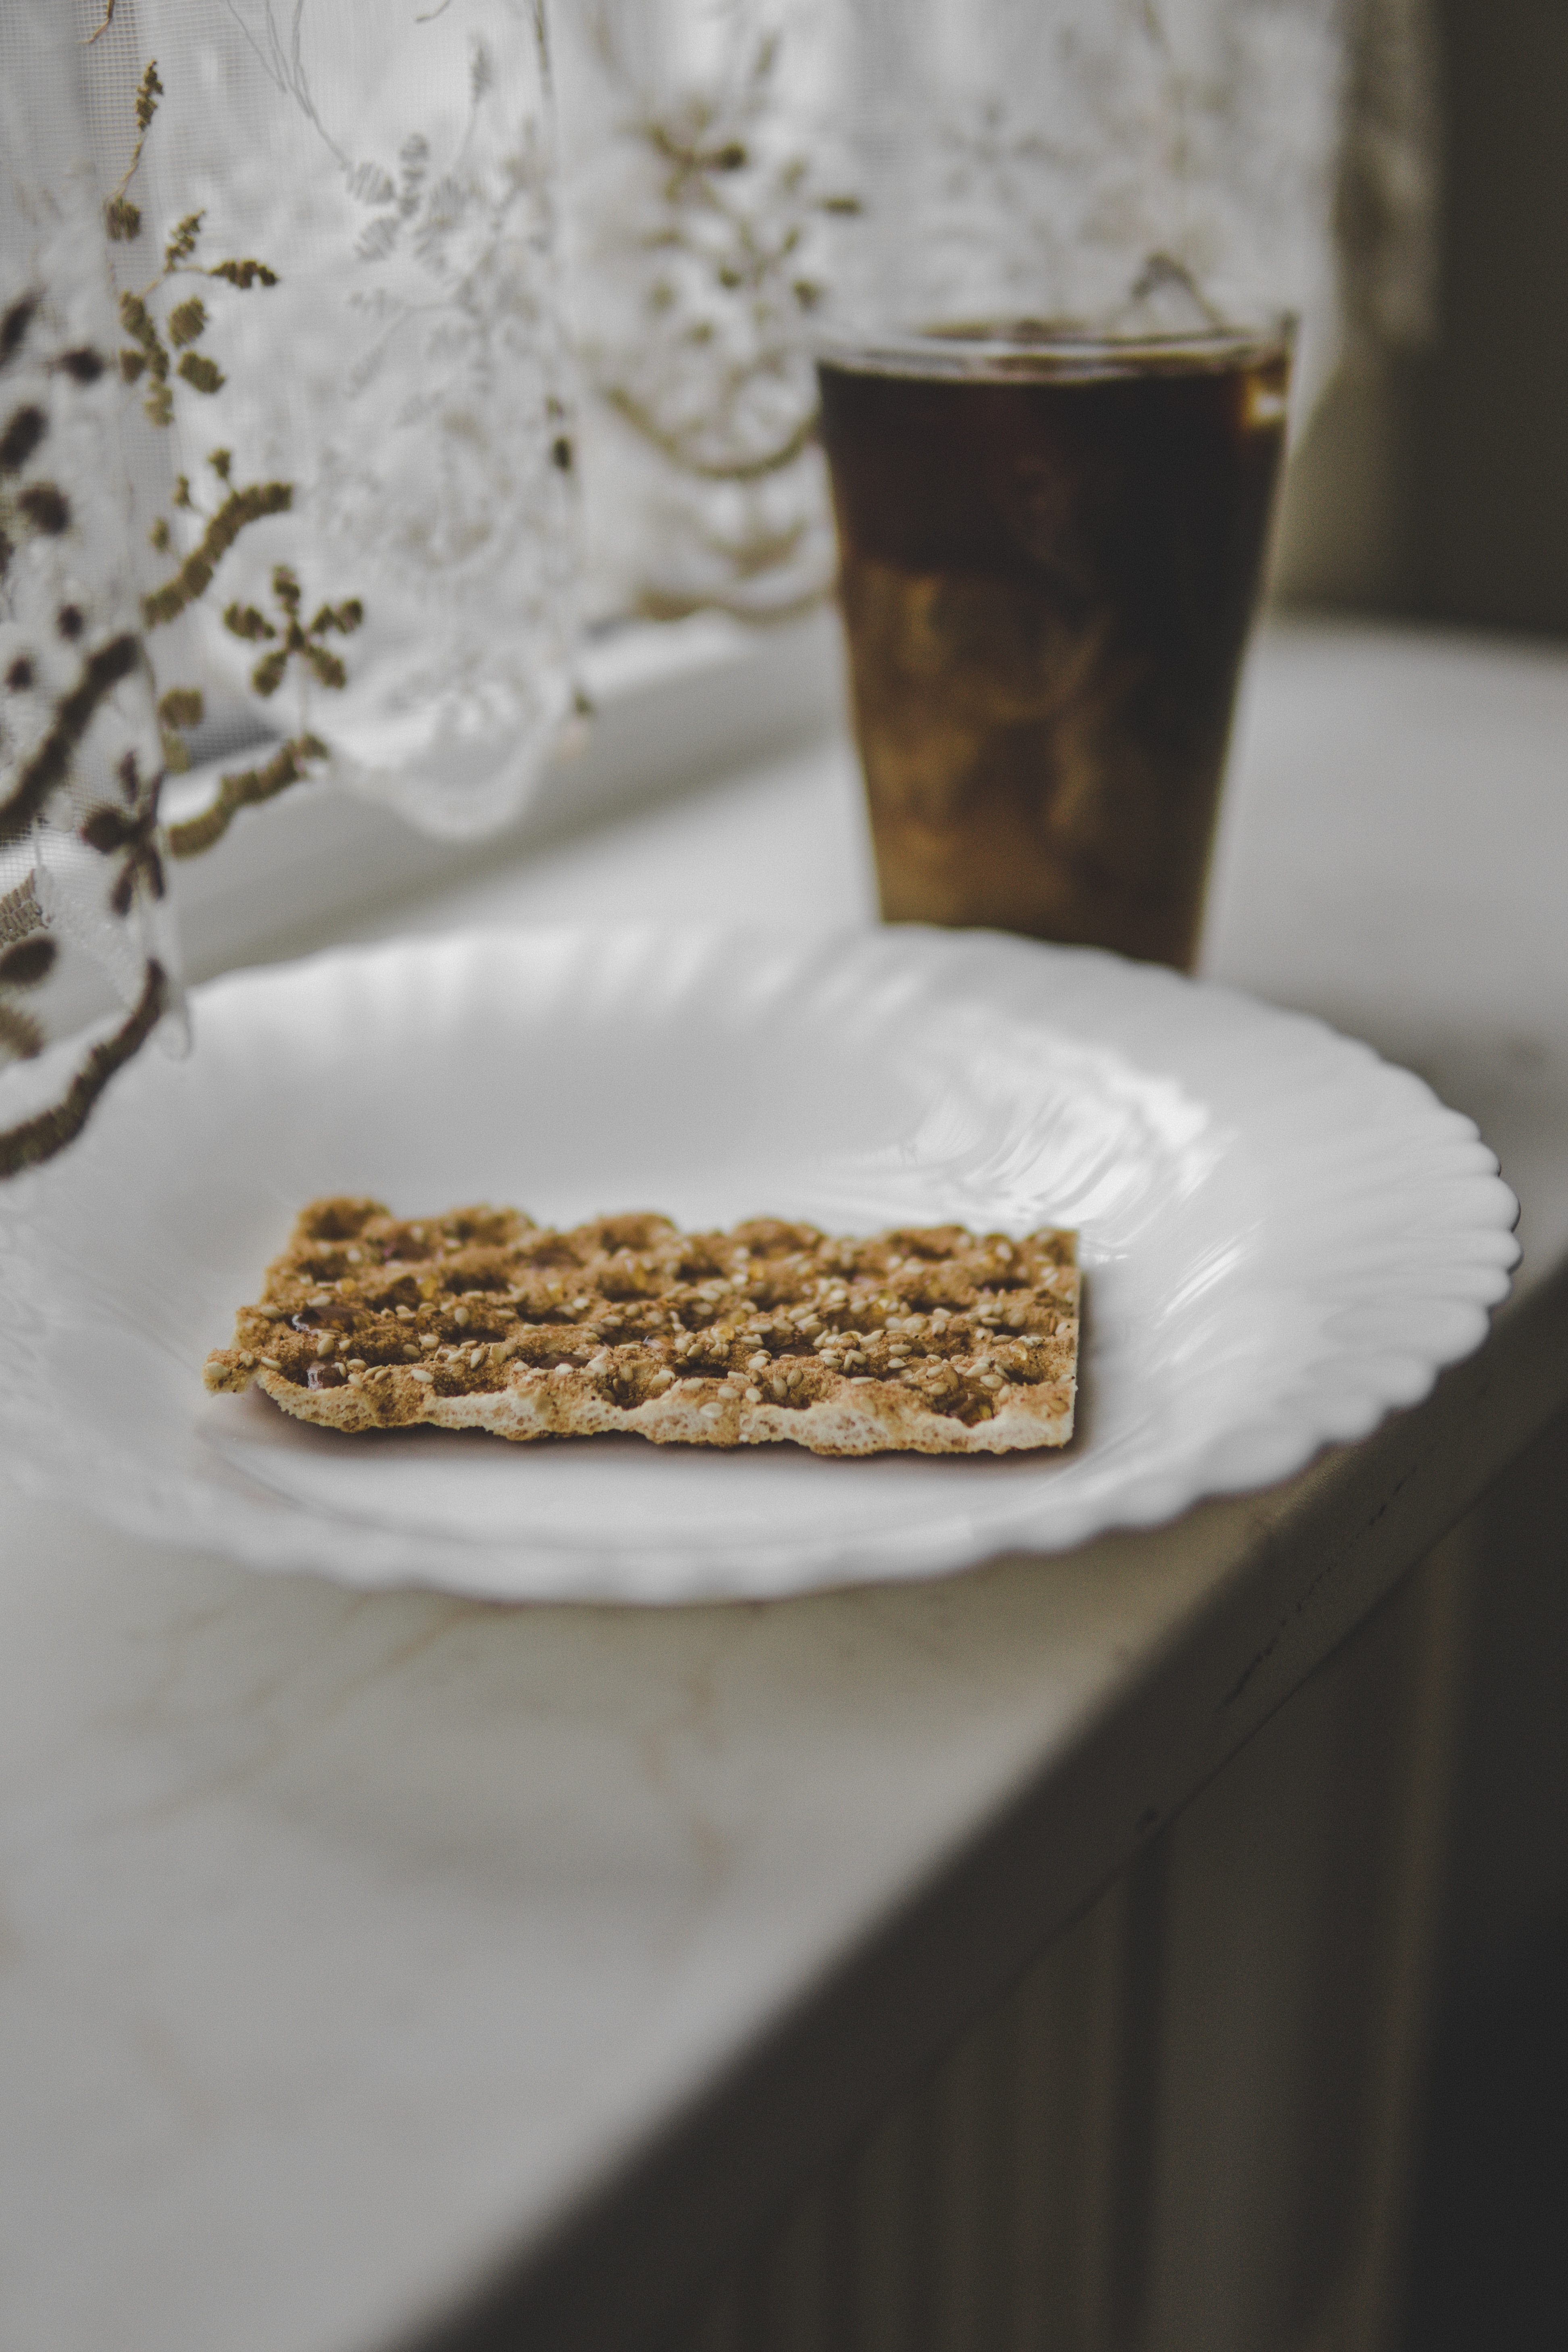 biscuit on round white ceramic plate near full drinking cup with brown liquid